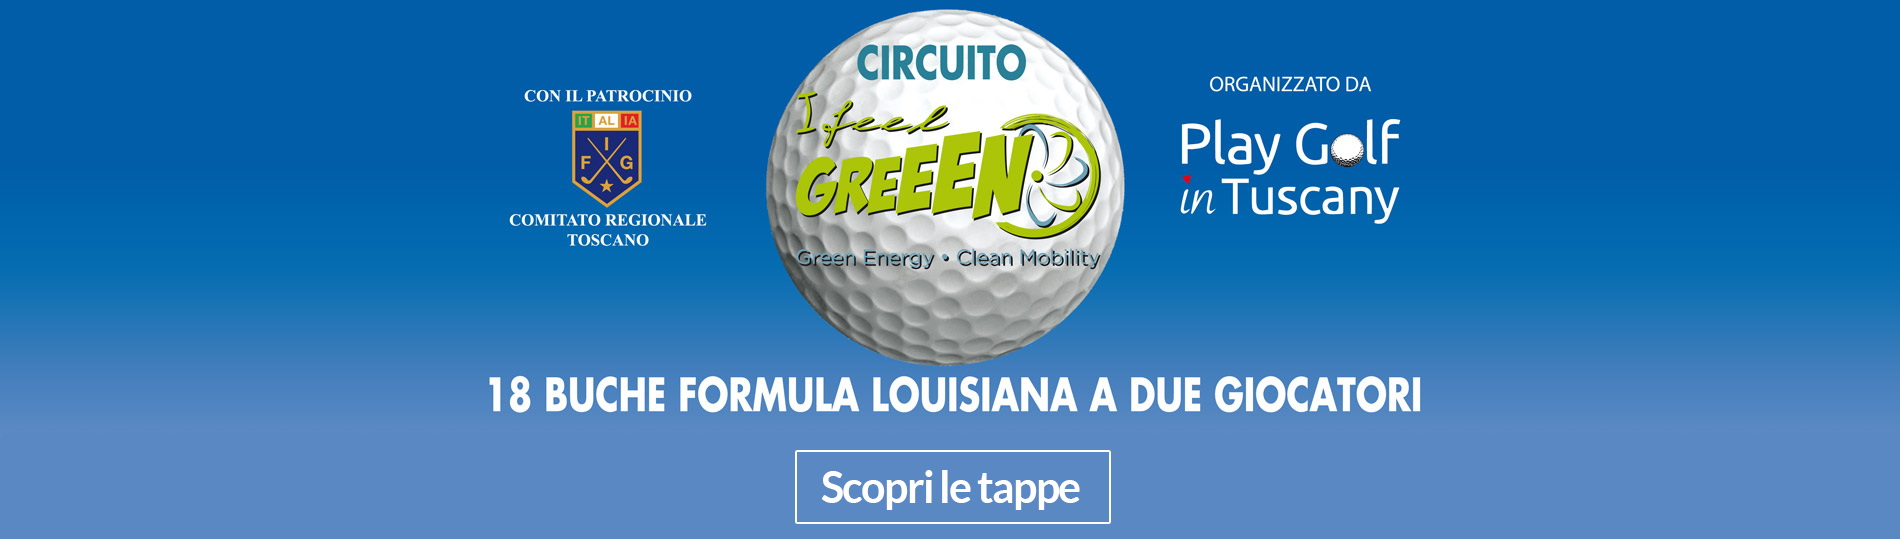 Circuito I Feel Green